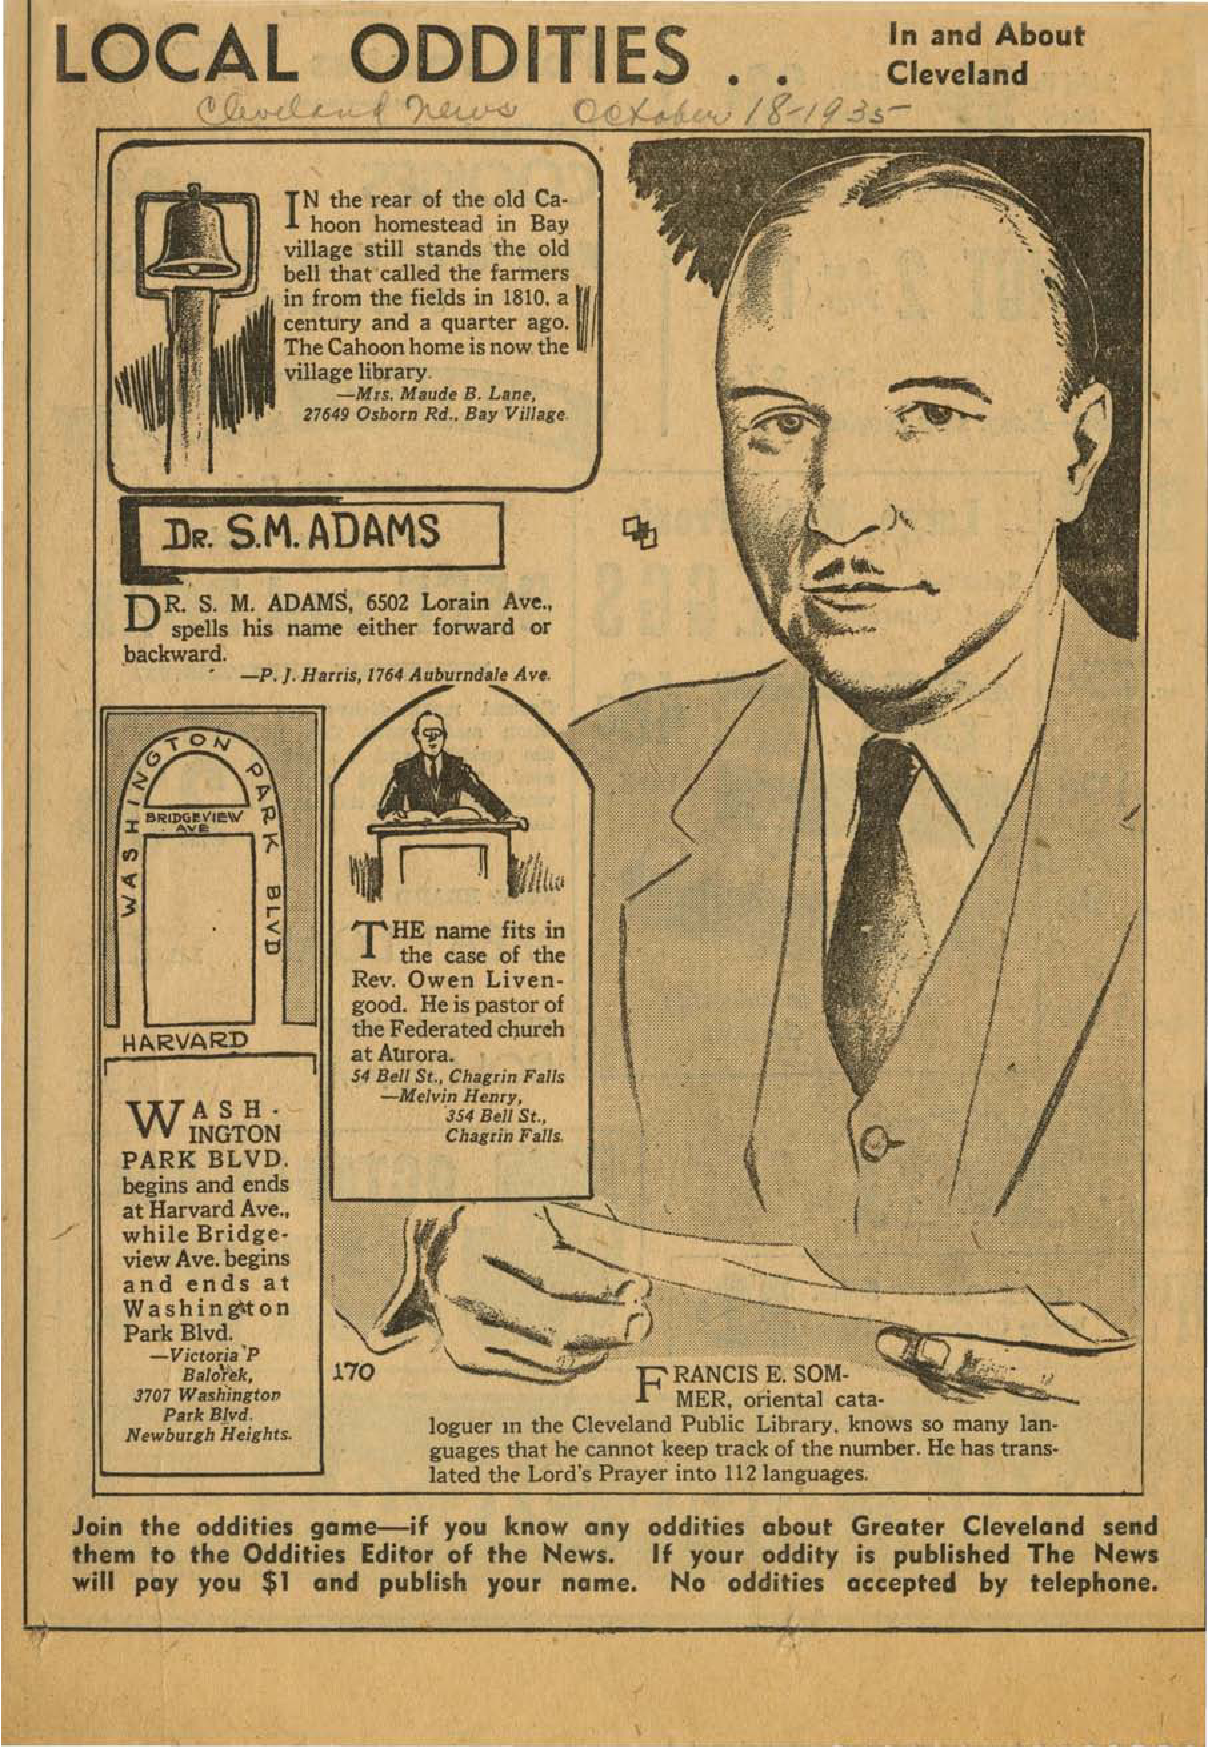 Local Oddities newspaper illustration of Frances E. Sommer, Special cataloger of languages in the John G. White Division of the Cleveland Public Library, and article about his work